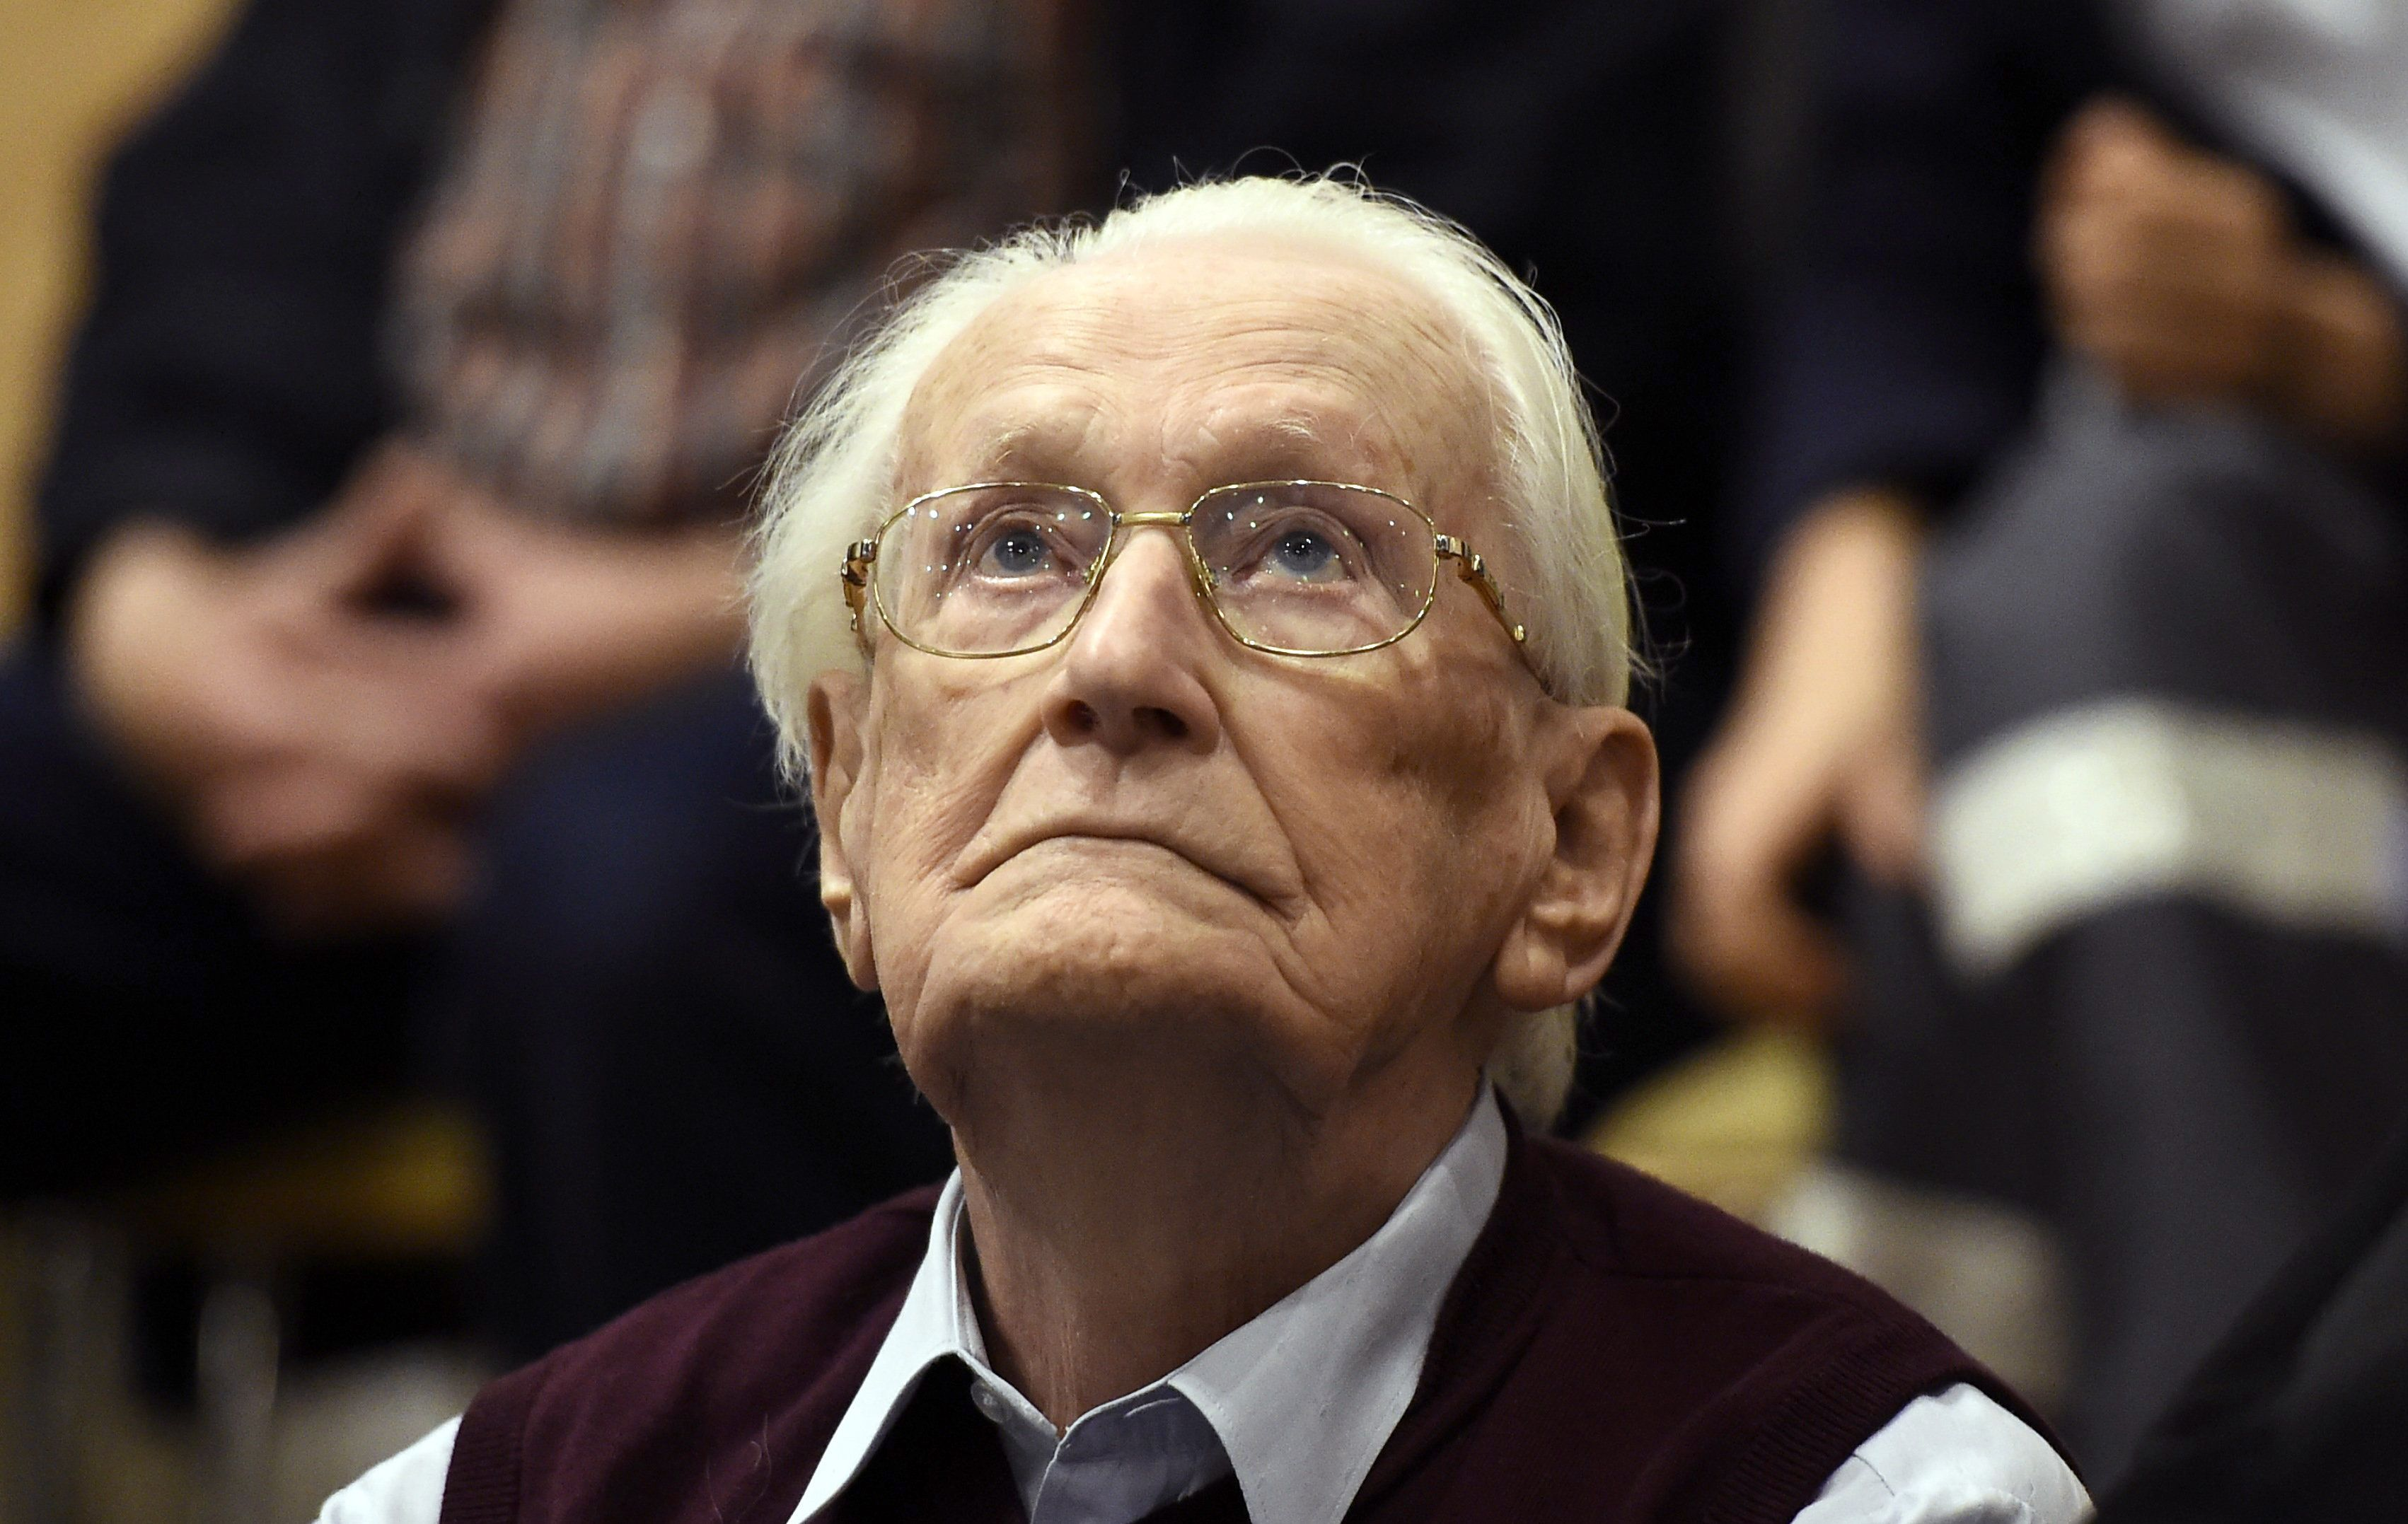 An ex-accountant of Auschwitz 96-year-old declared fit for detention